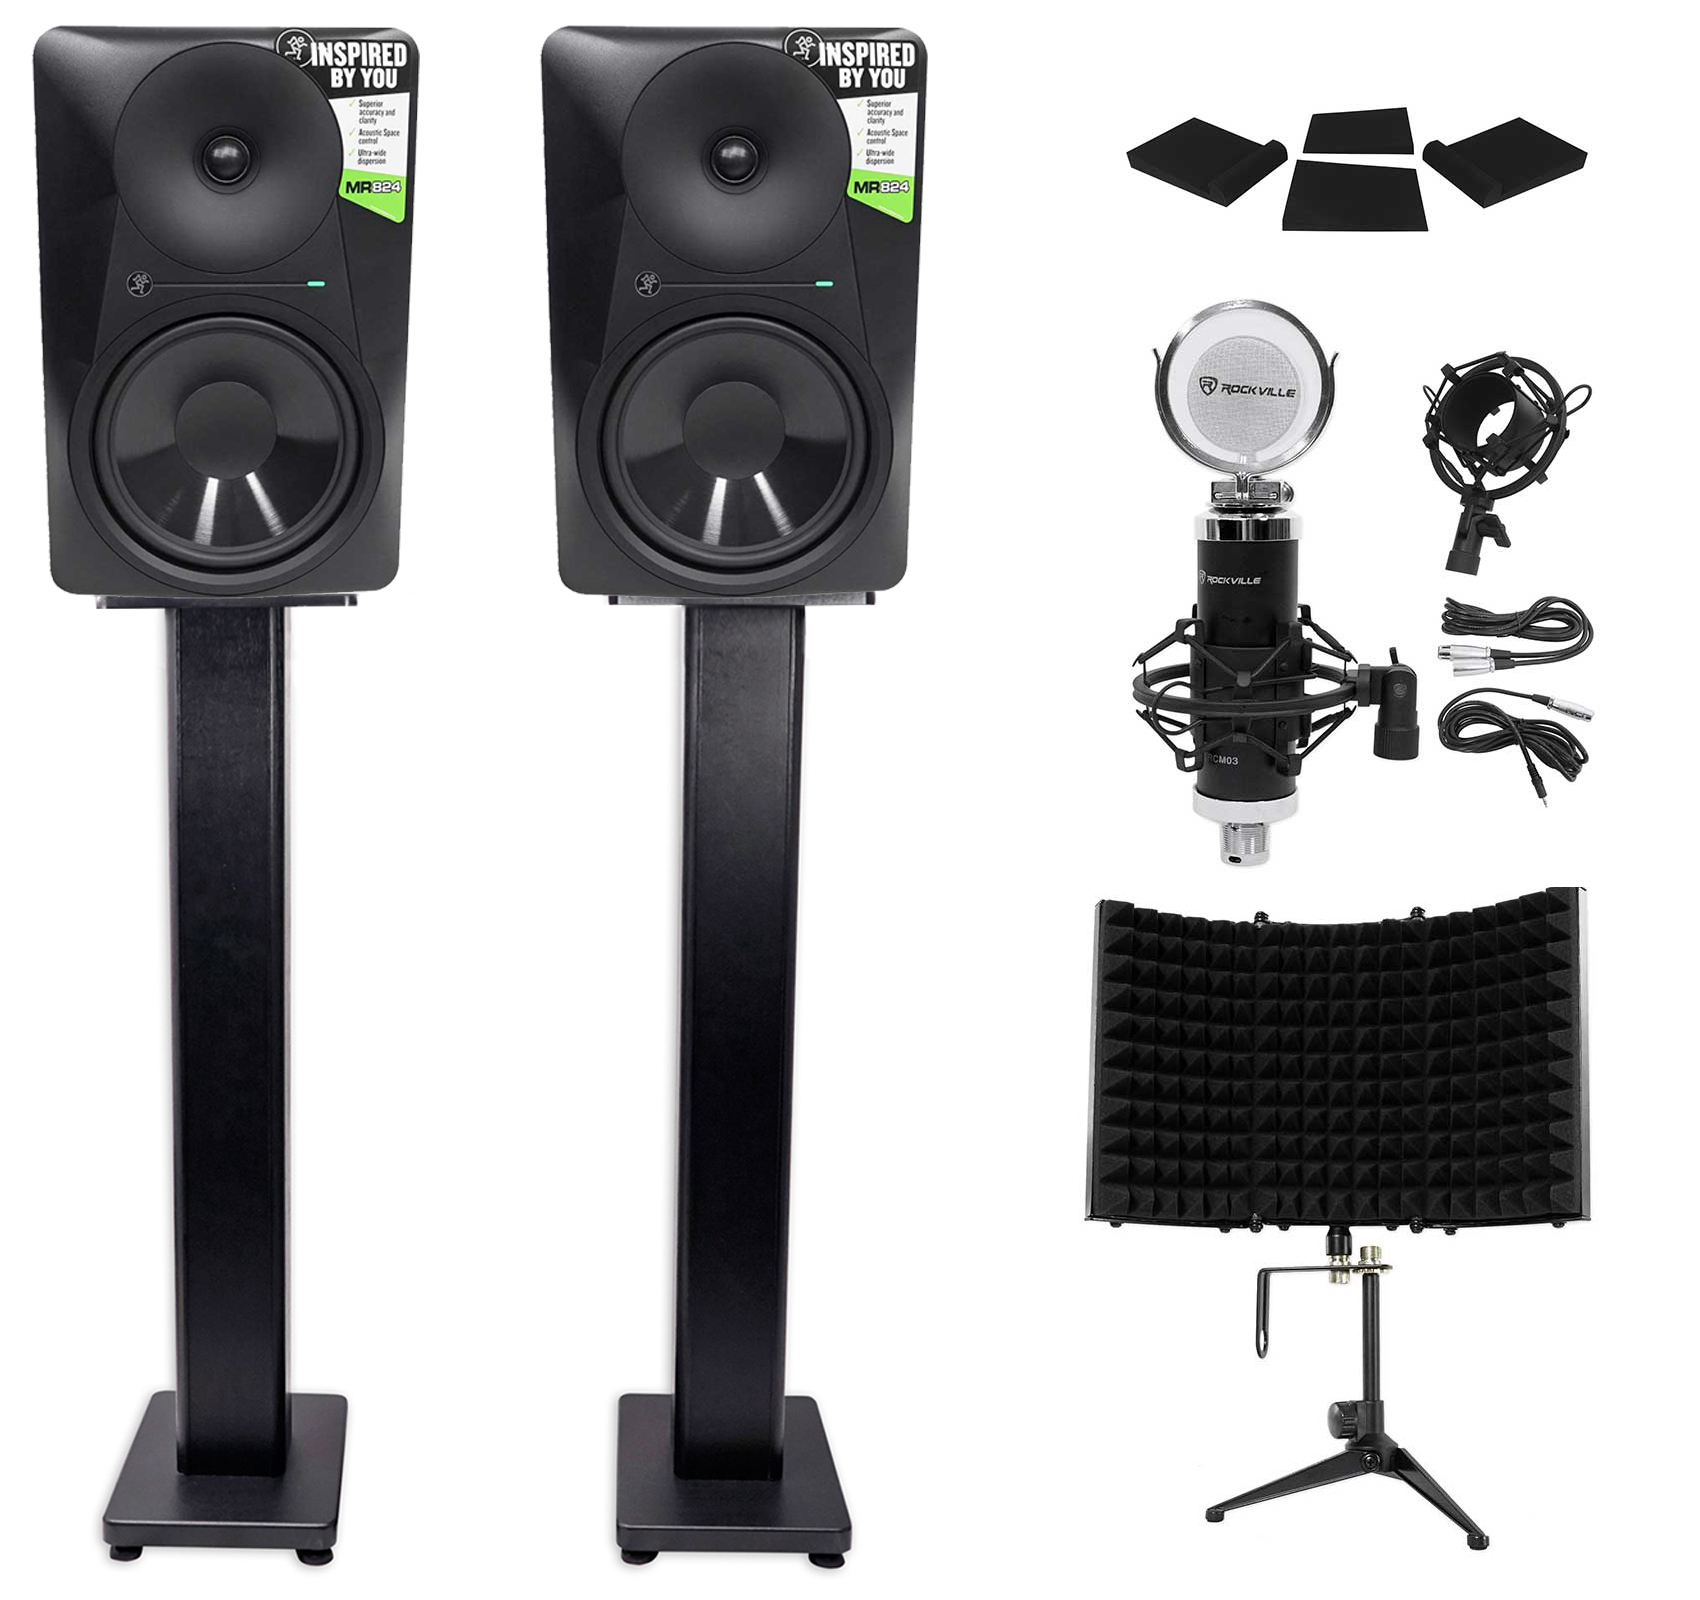 2 Mackie MR824 8� 85w Powered Studio Monitors+Condenser Mic+Stands+Pads+Shield by Mackie